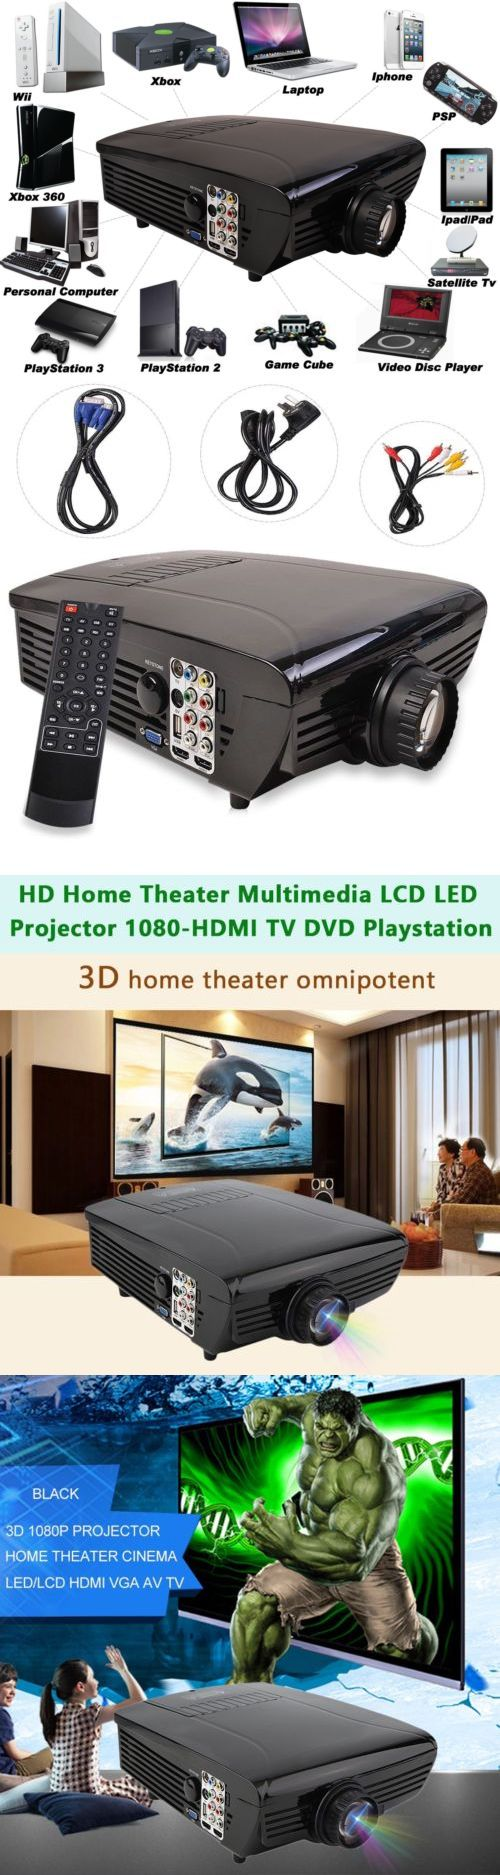 Home Theater Projectors: 7000Lm Hd Home Theater Multimedia Lcd Led Projector 1080-Hdmi Tv Dvd Playstation -> BUY IT NOW ONLY: $122 on eBay!